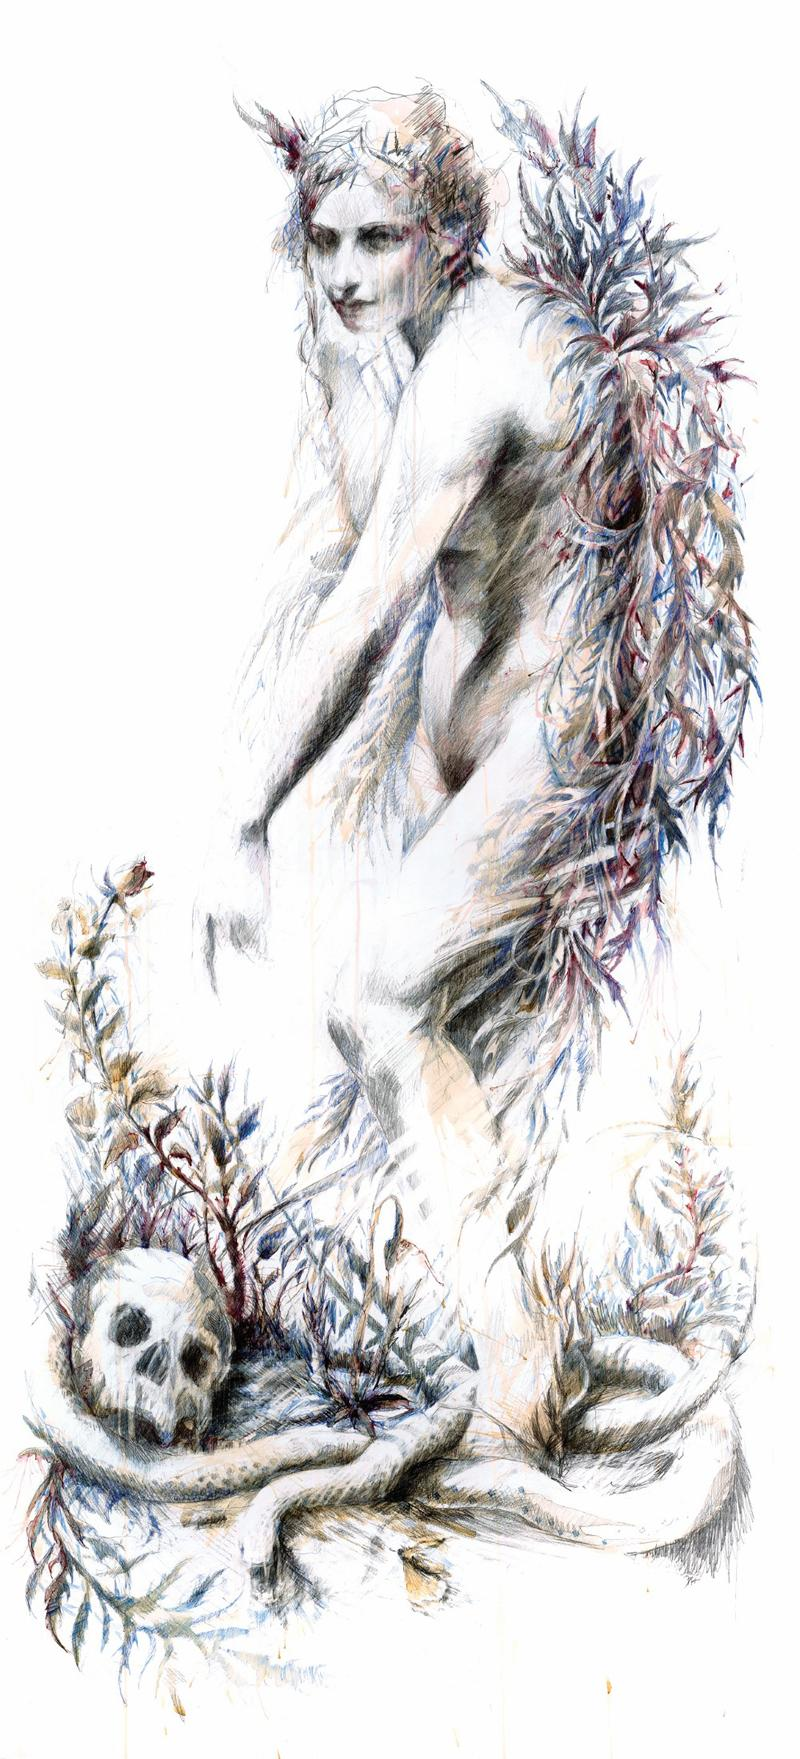 LooksLikeGoodDesignLooks like good Illustrations by Carne Griffiths